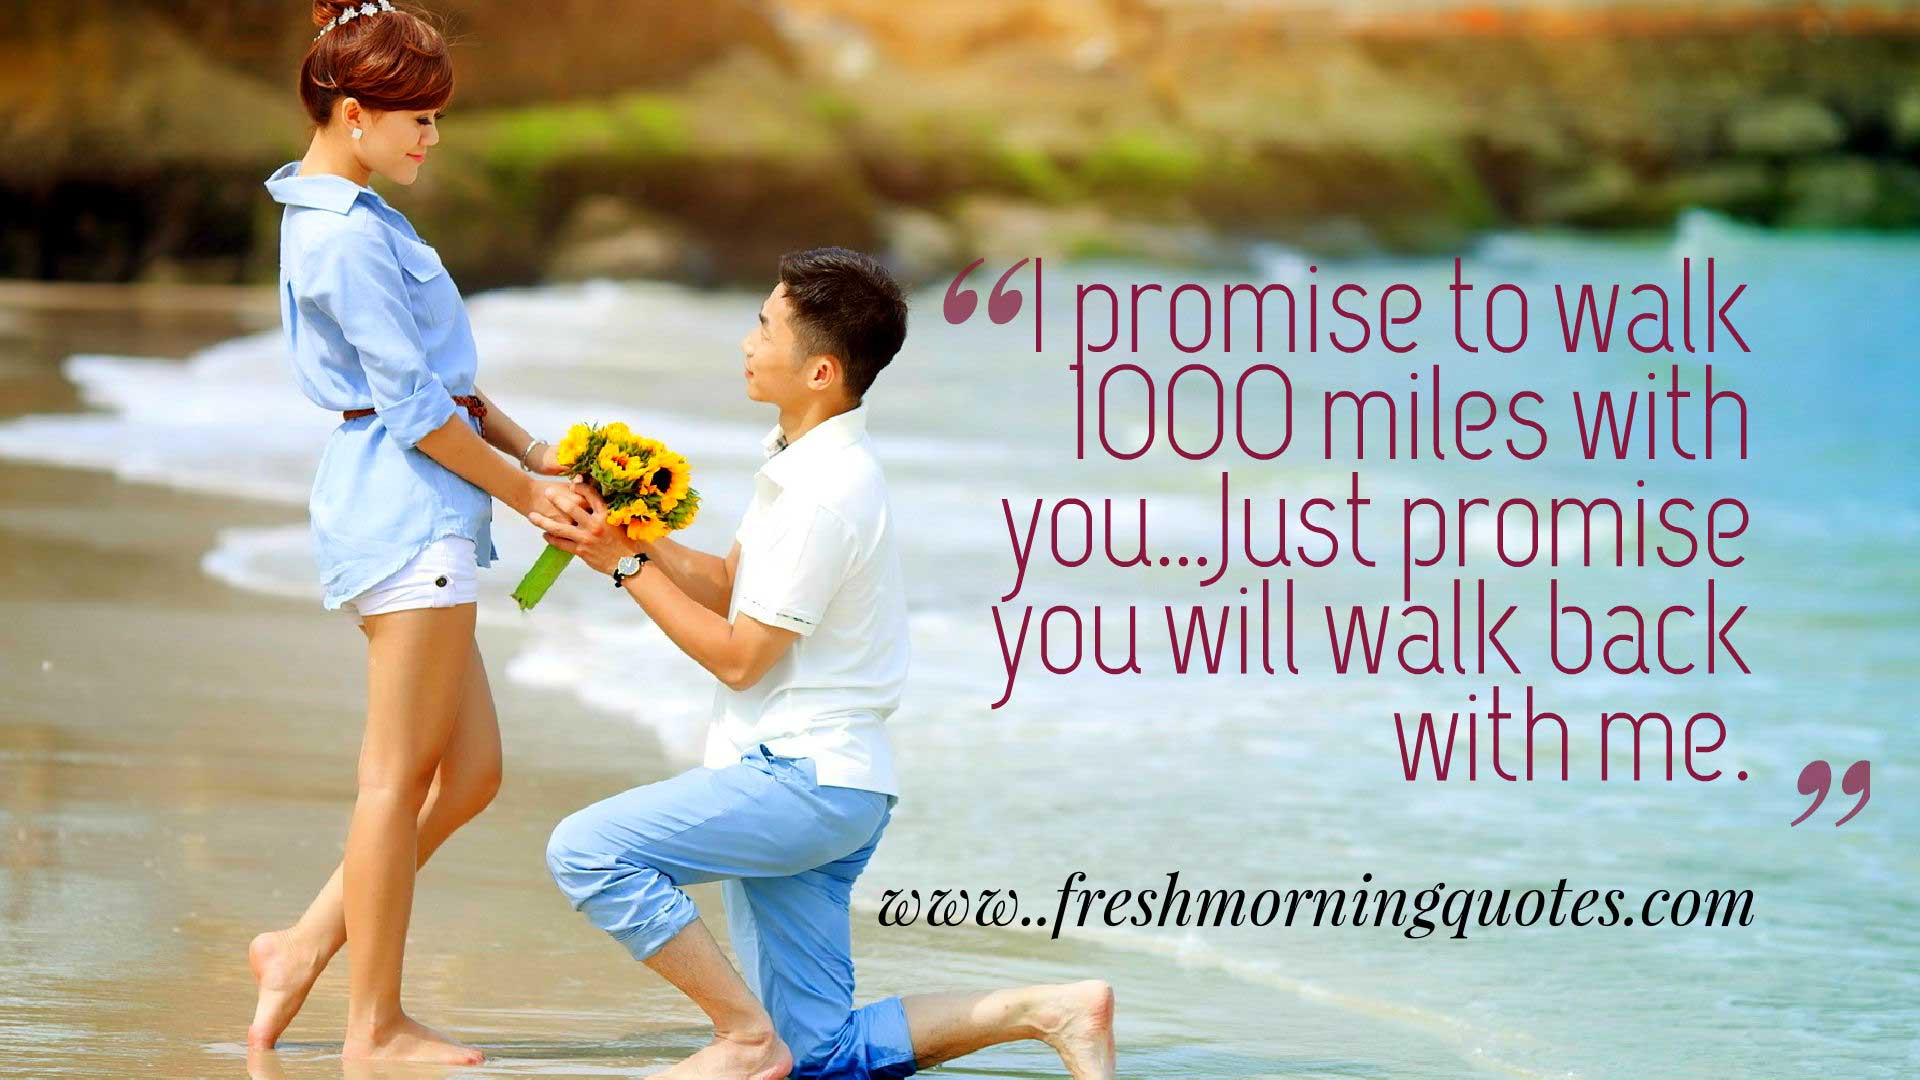 Broken Promises Quotes Wallpapers 42 Heart Touching Love Promise Quotes Freshmorningquotes